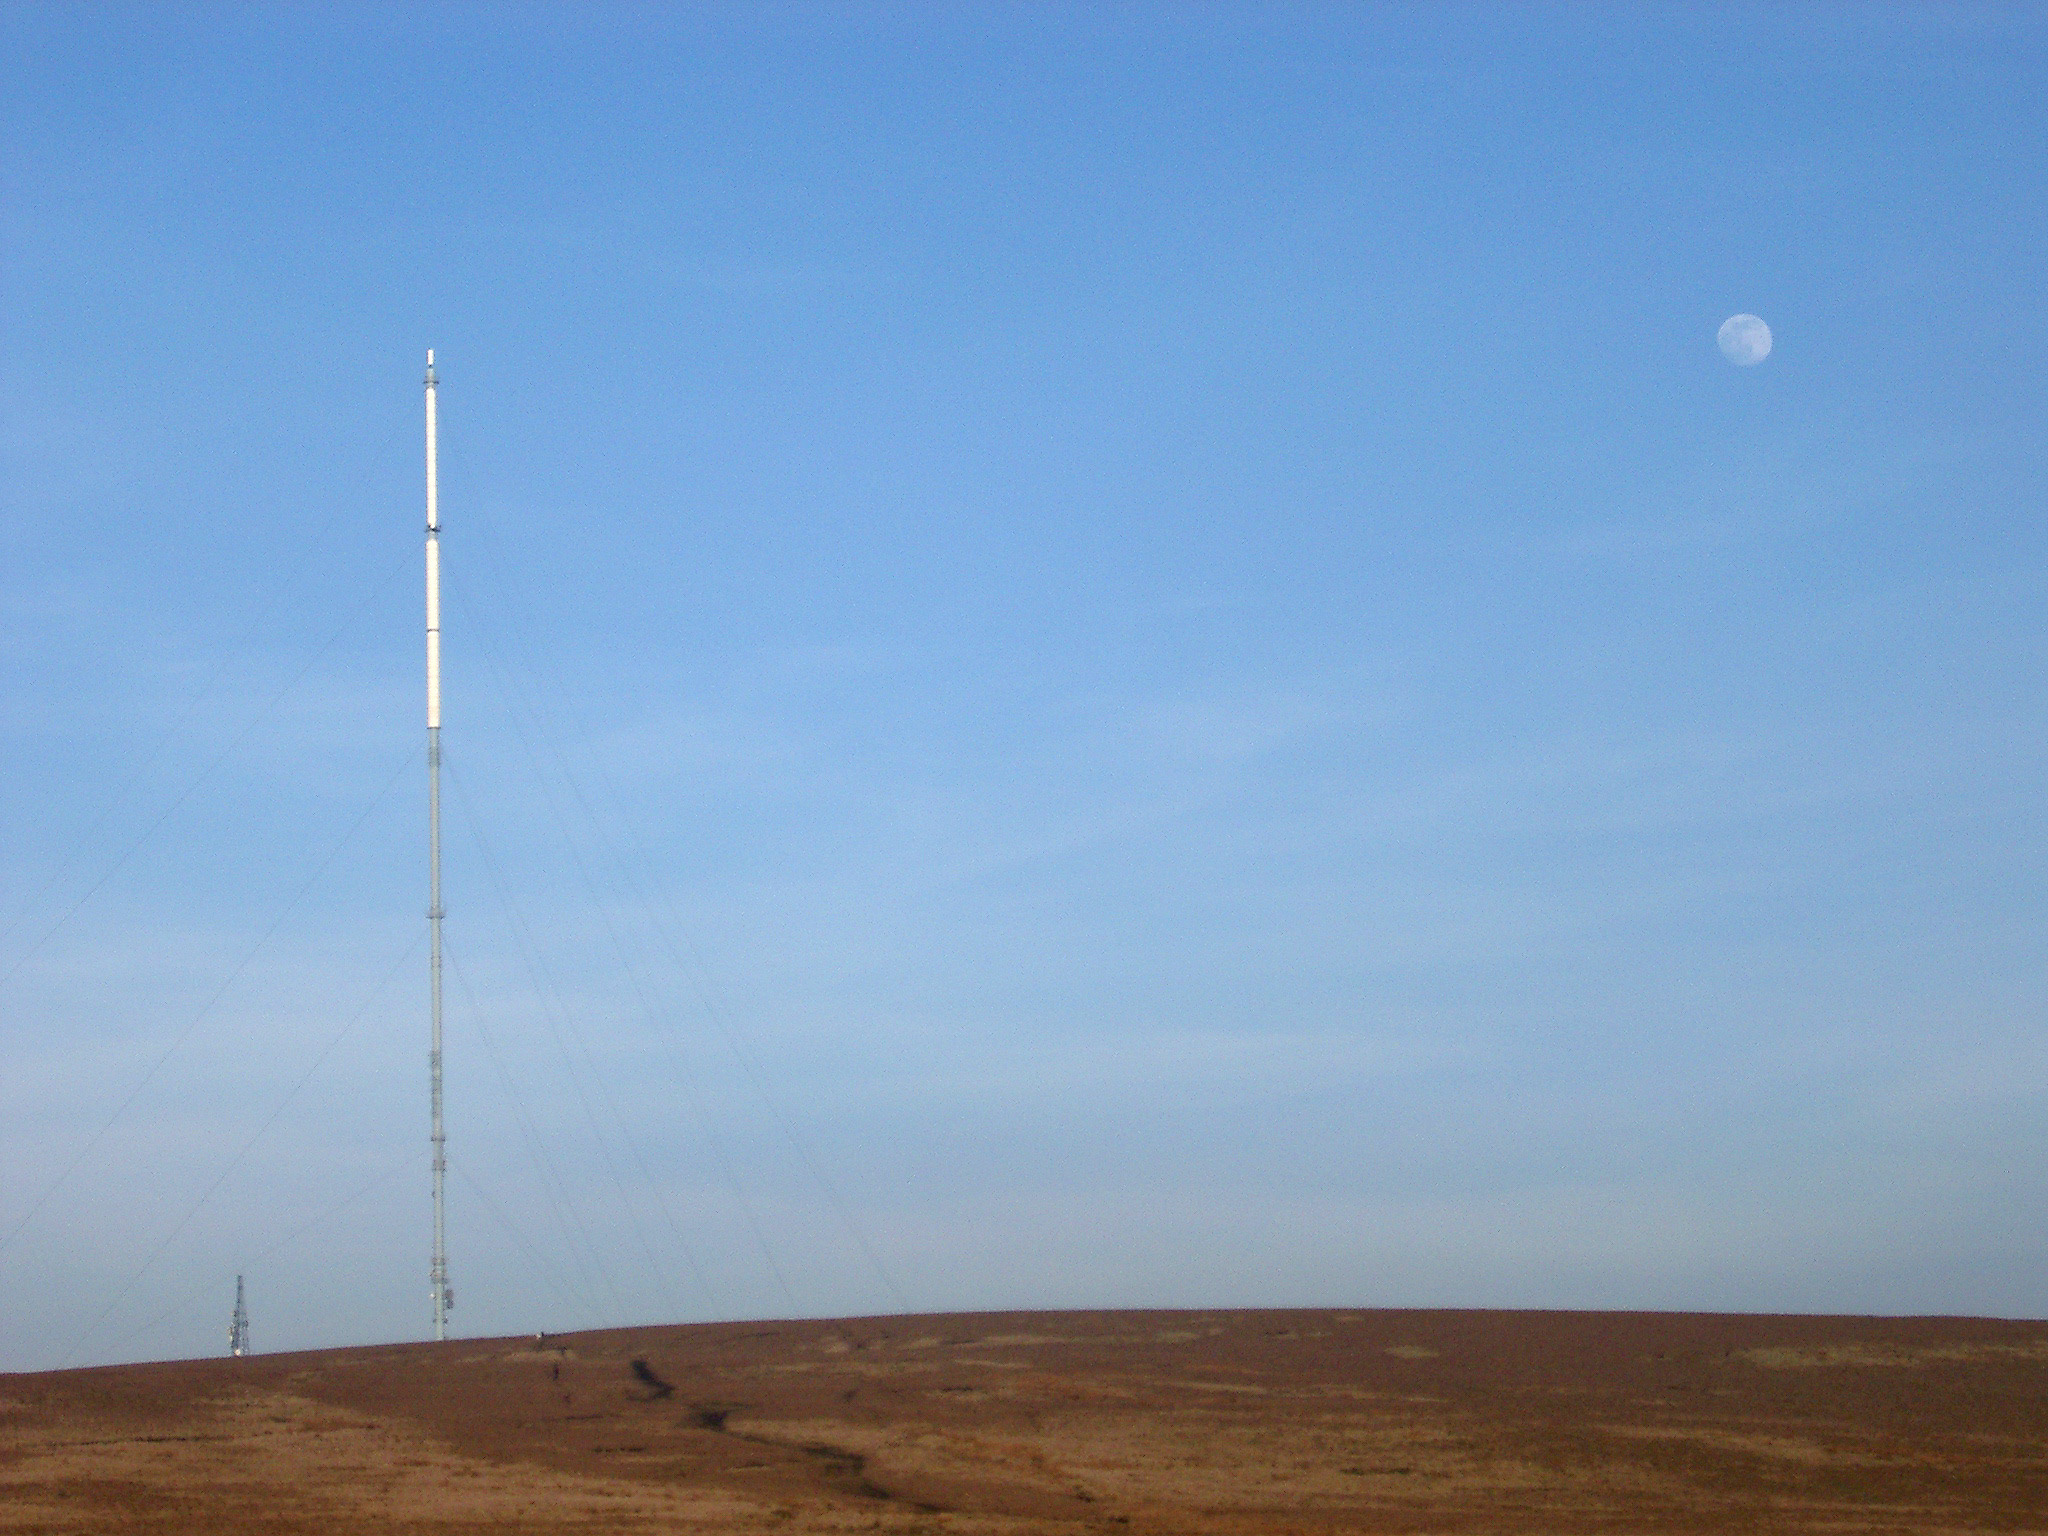 Winter Hill Transmitter on Spacious Landscape of Famous Rivington Pike in Lancashire, England. Captured with Light Blue Sky Background.